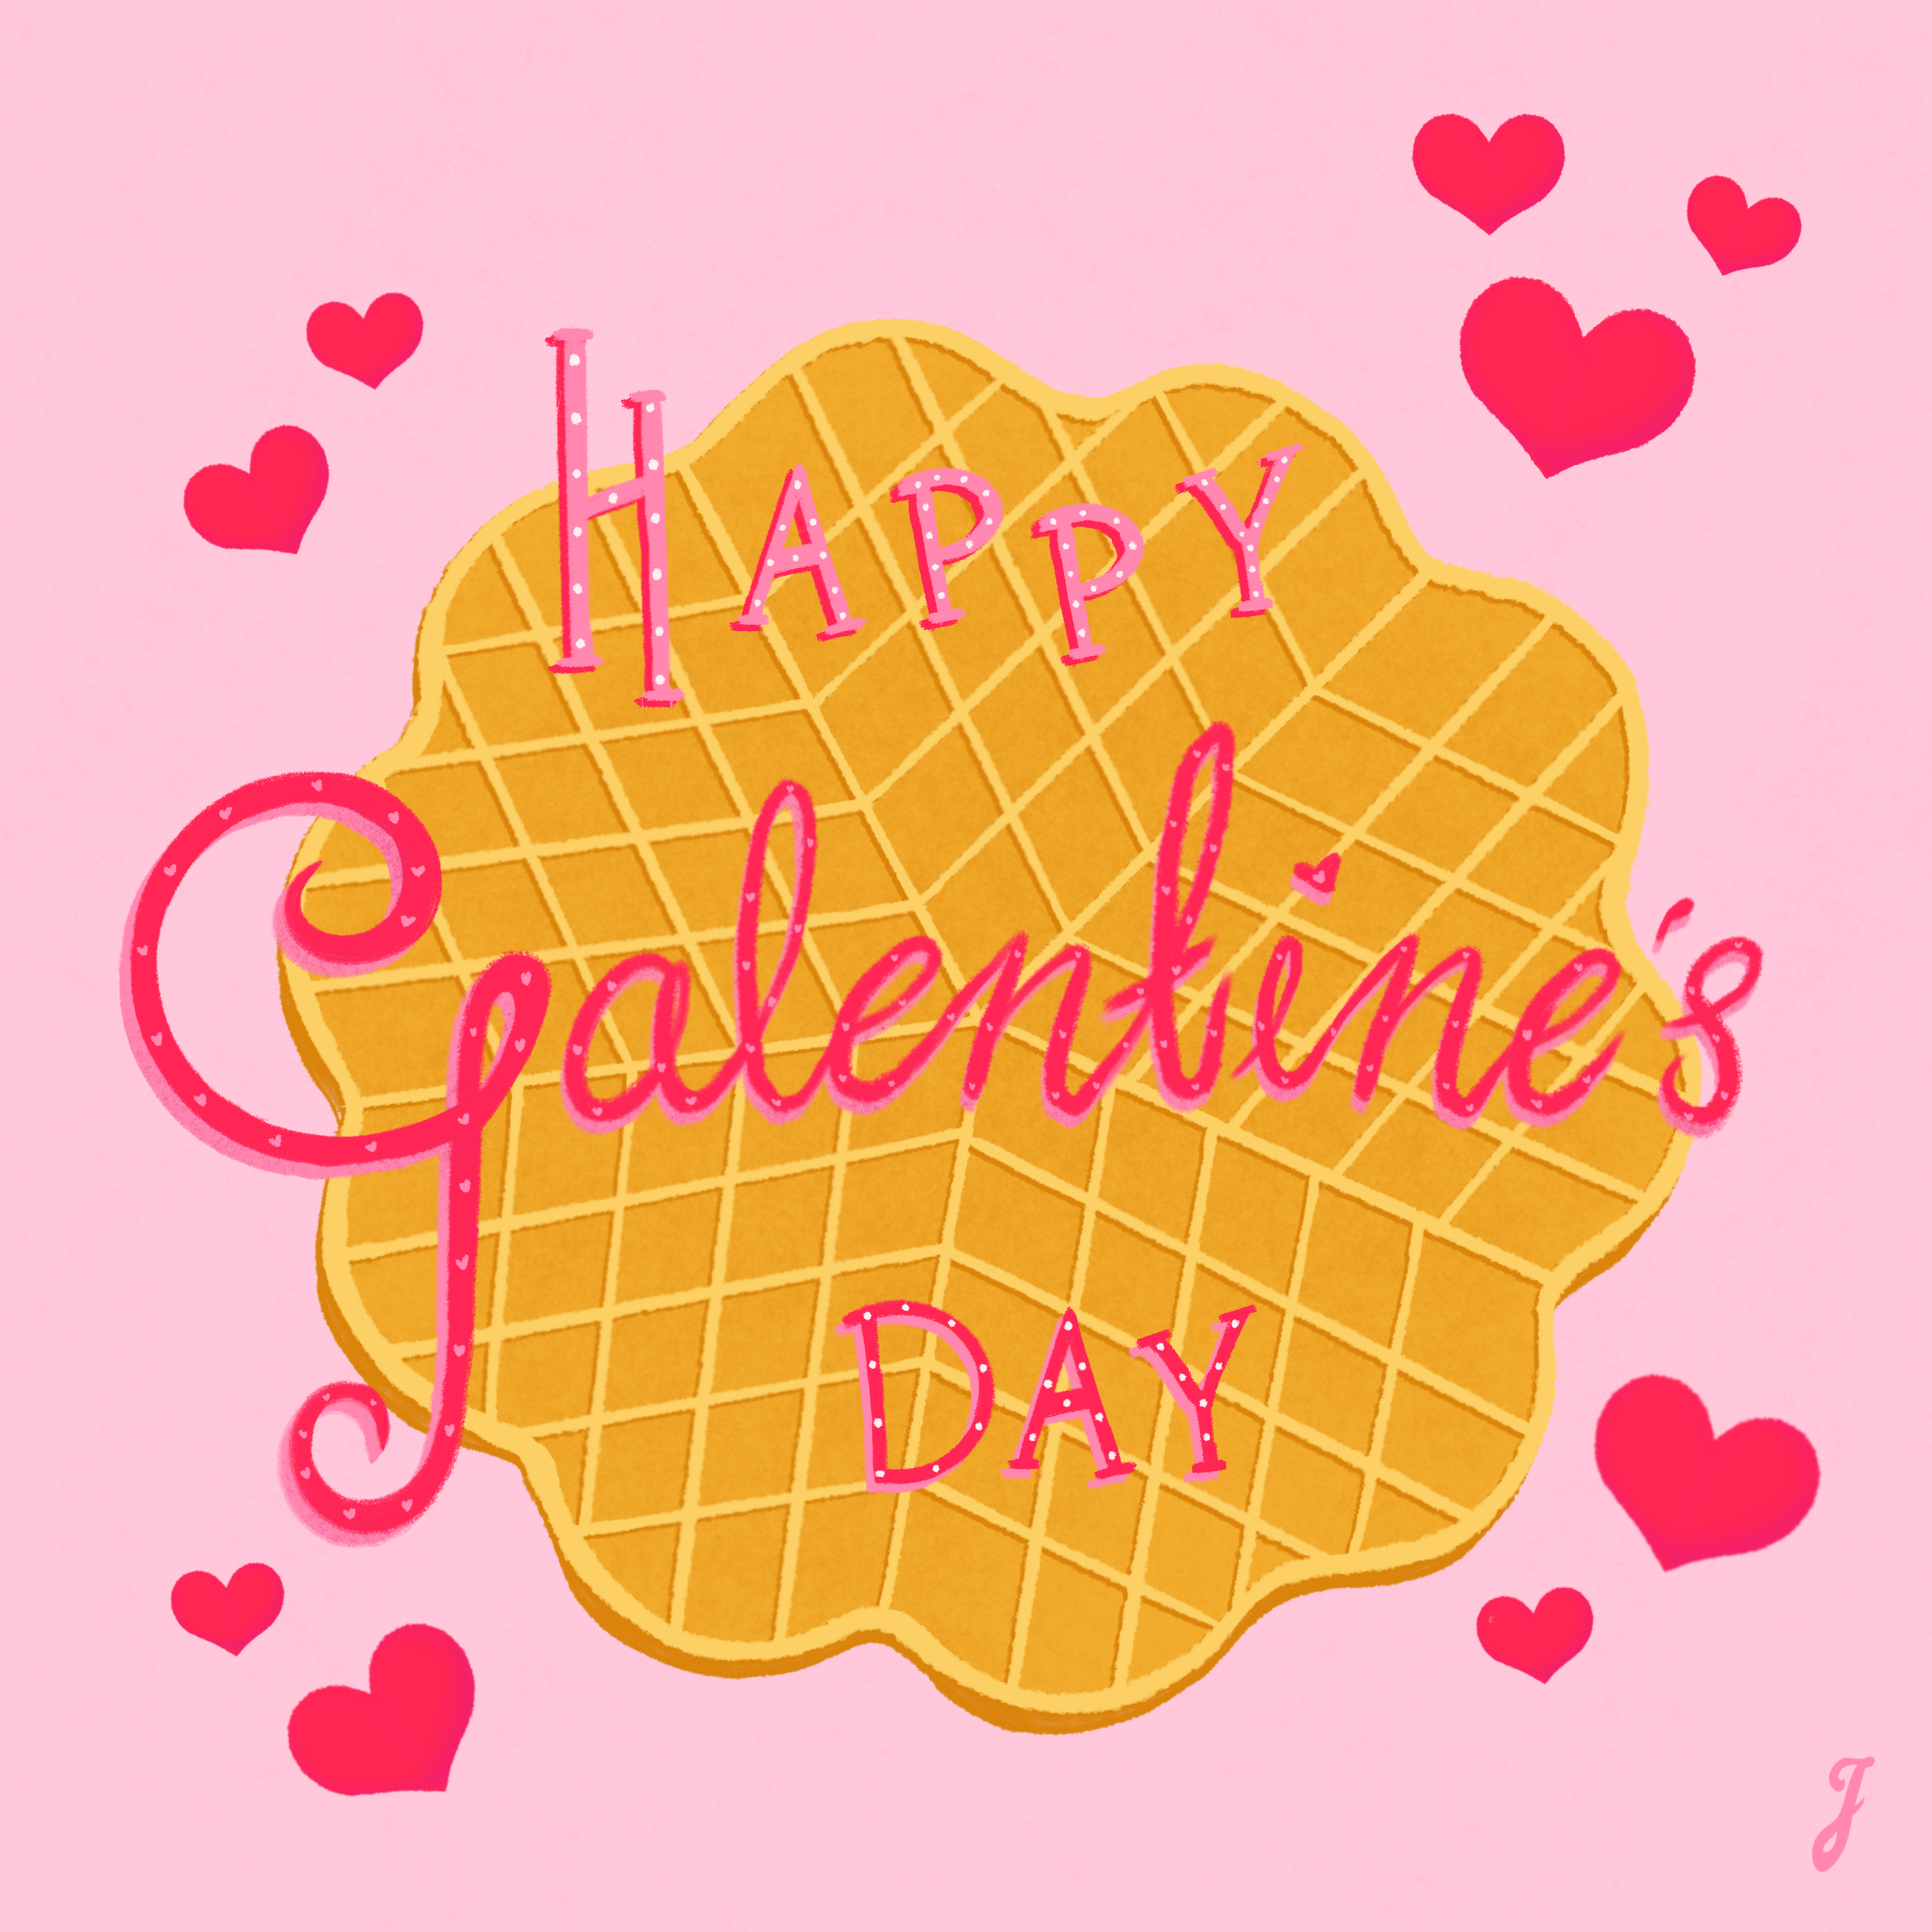 Jennis-Prints-Illustration-Galentine's-Day